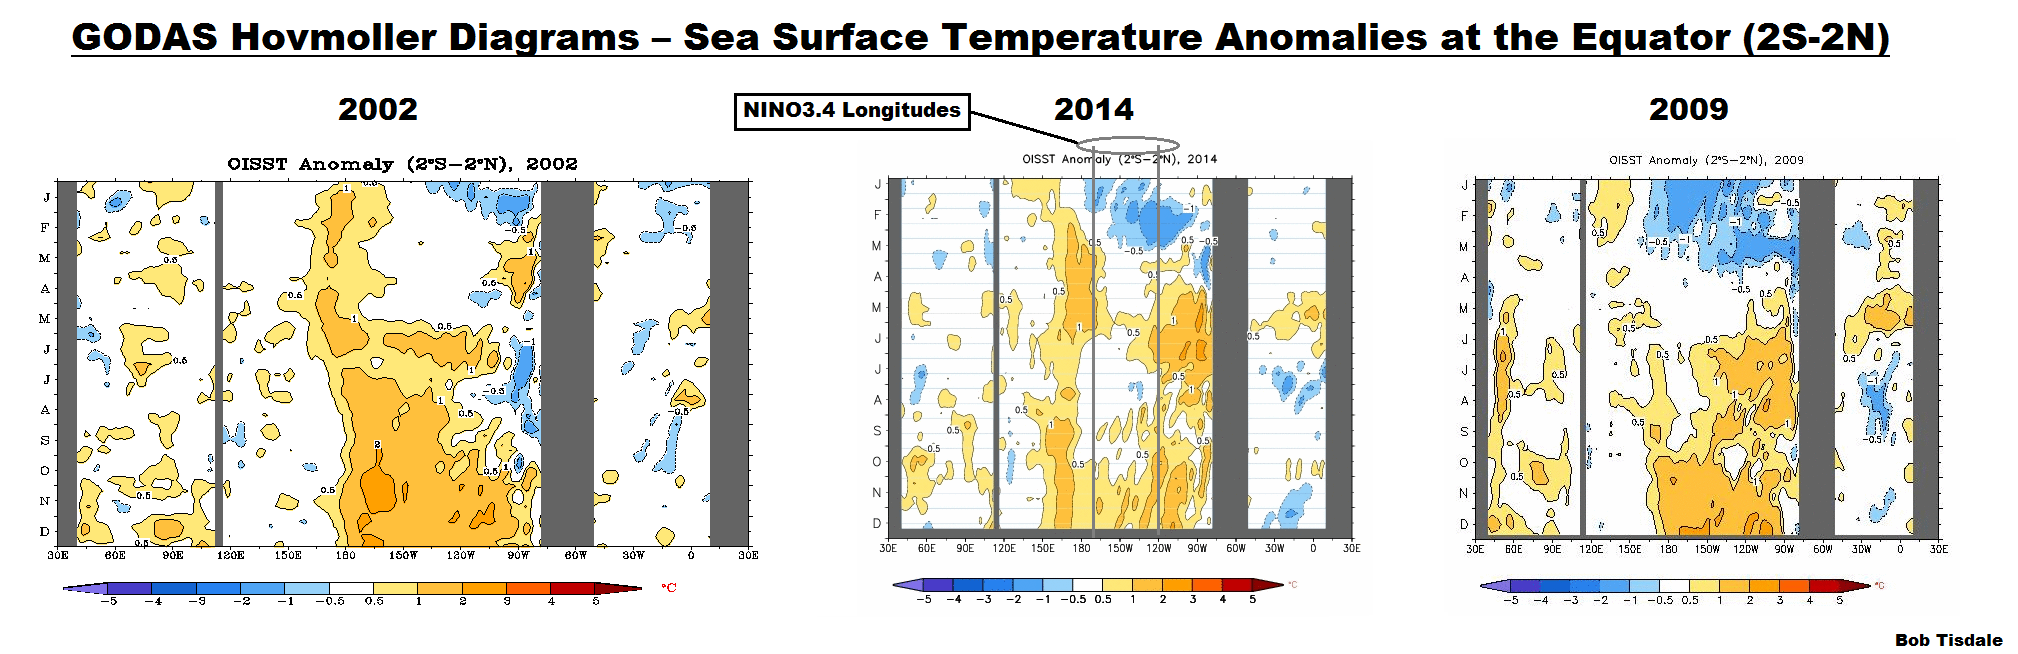 13 GODAS Hovmoller - Sea Surface Temp Anomalies